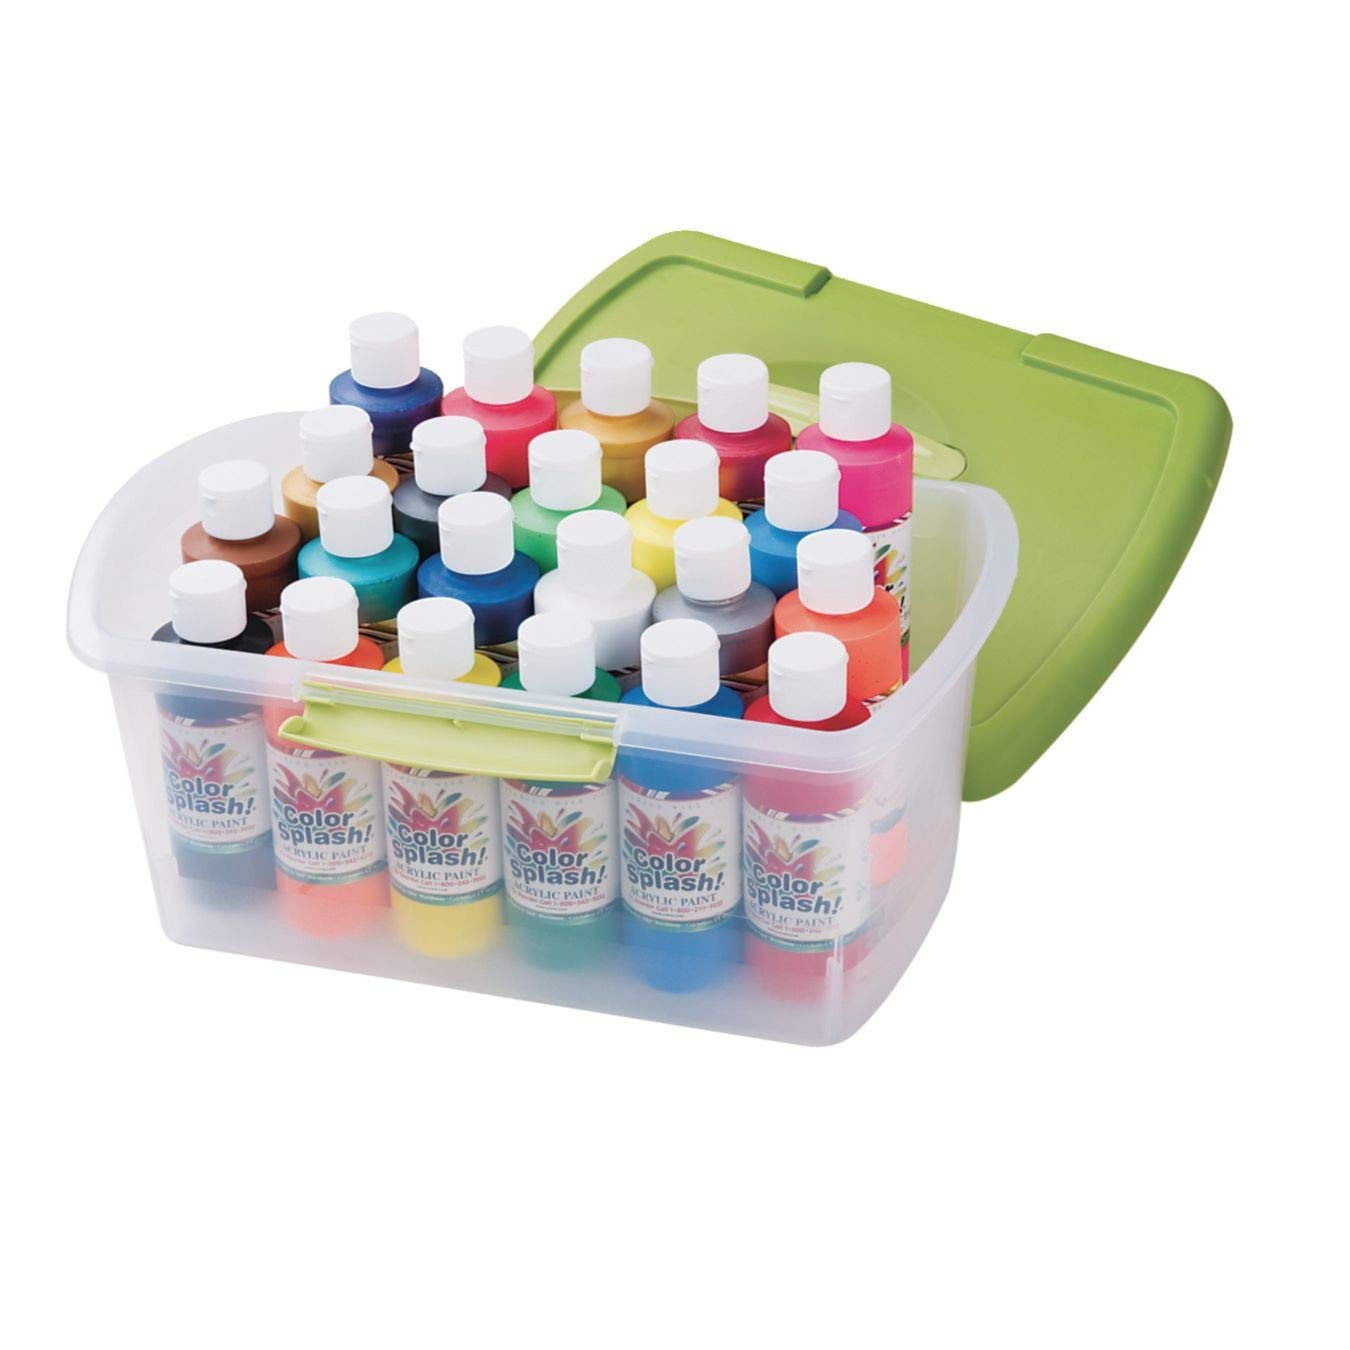 Color Splash Acrylic Paint in a Tub